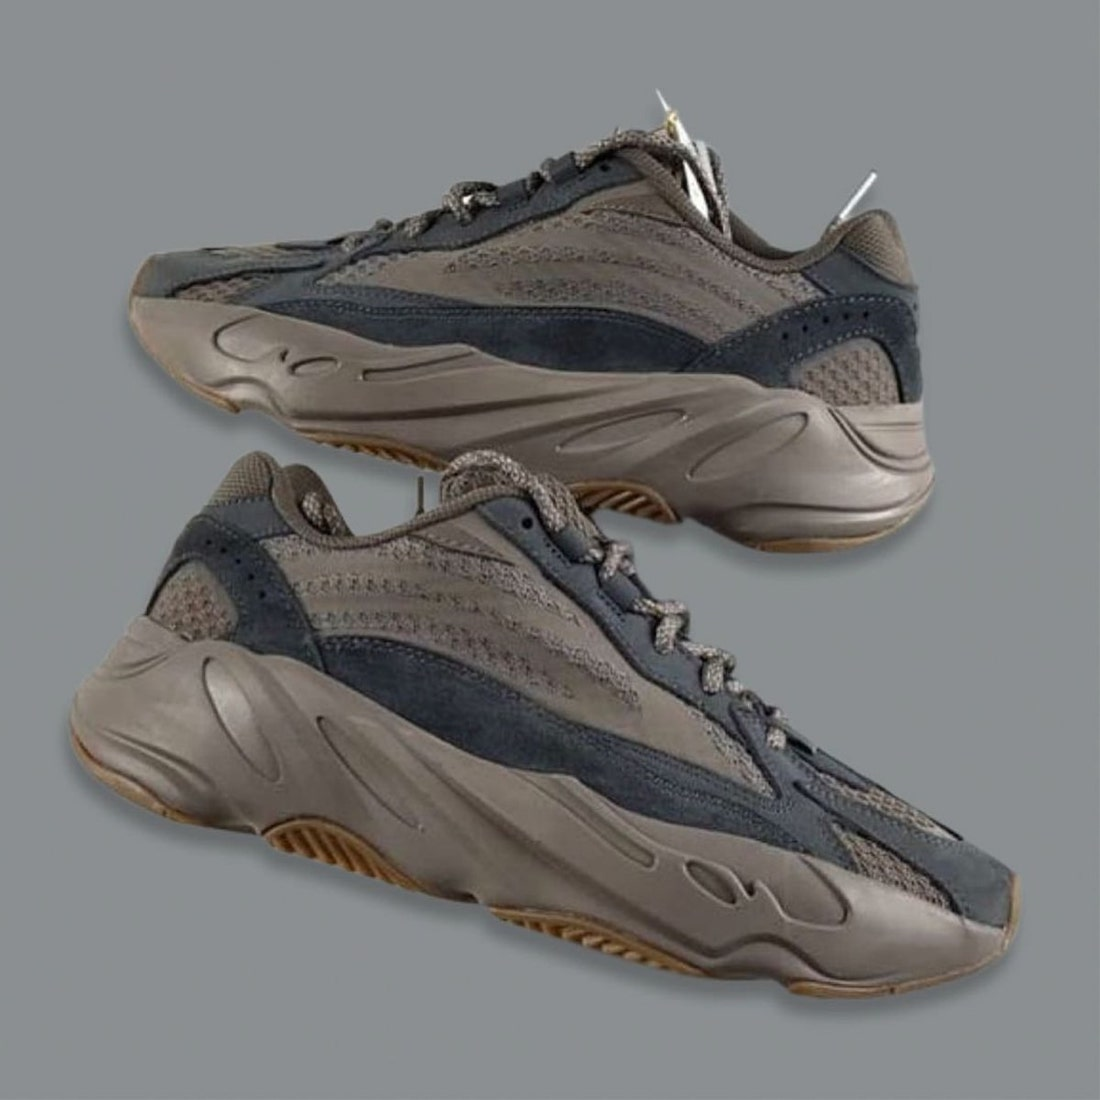 adidas yeezy boost 700 v2 mauve release info